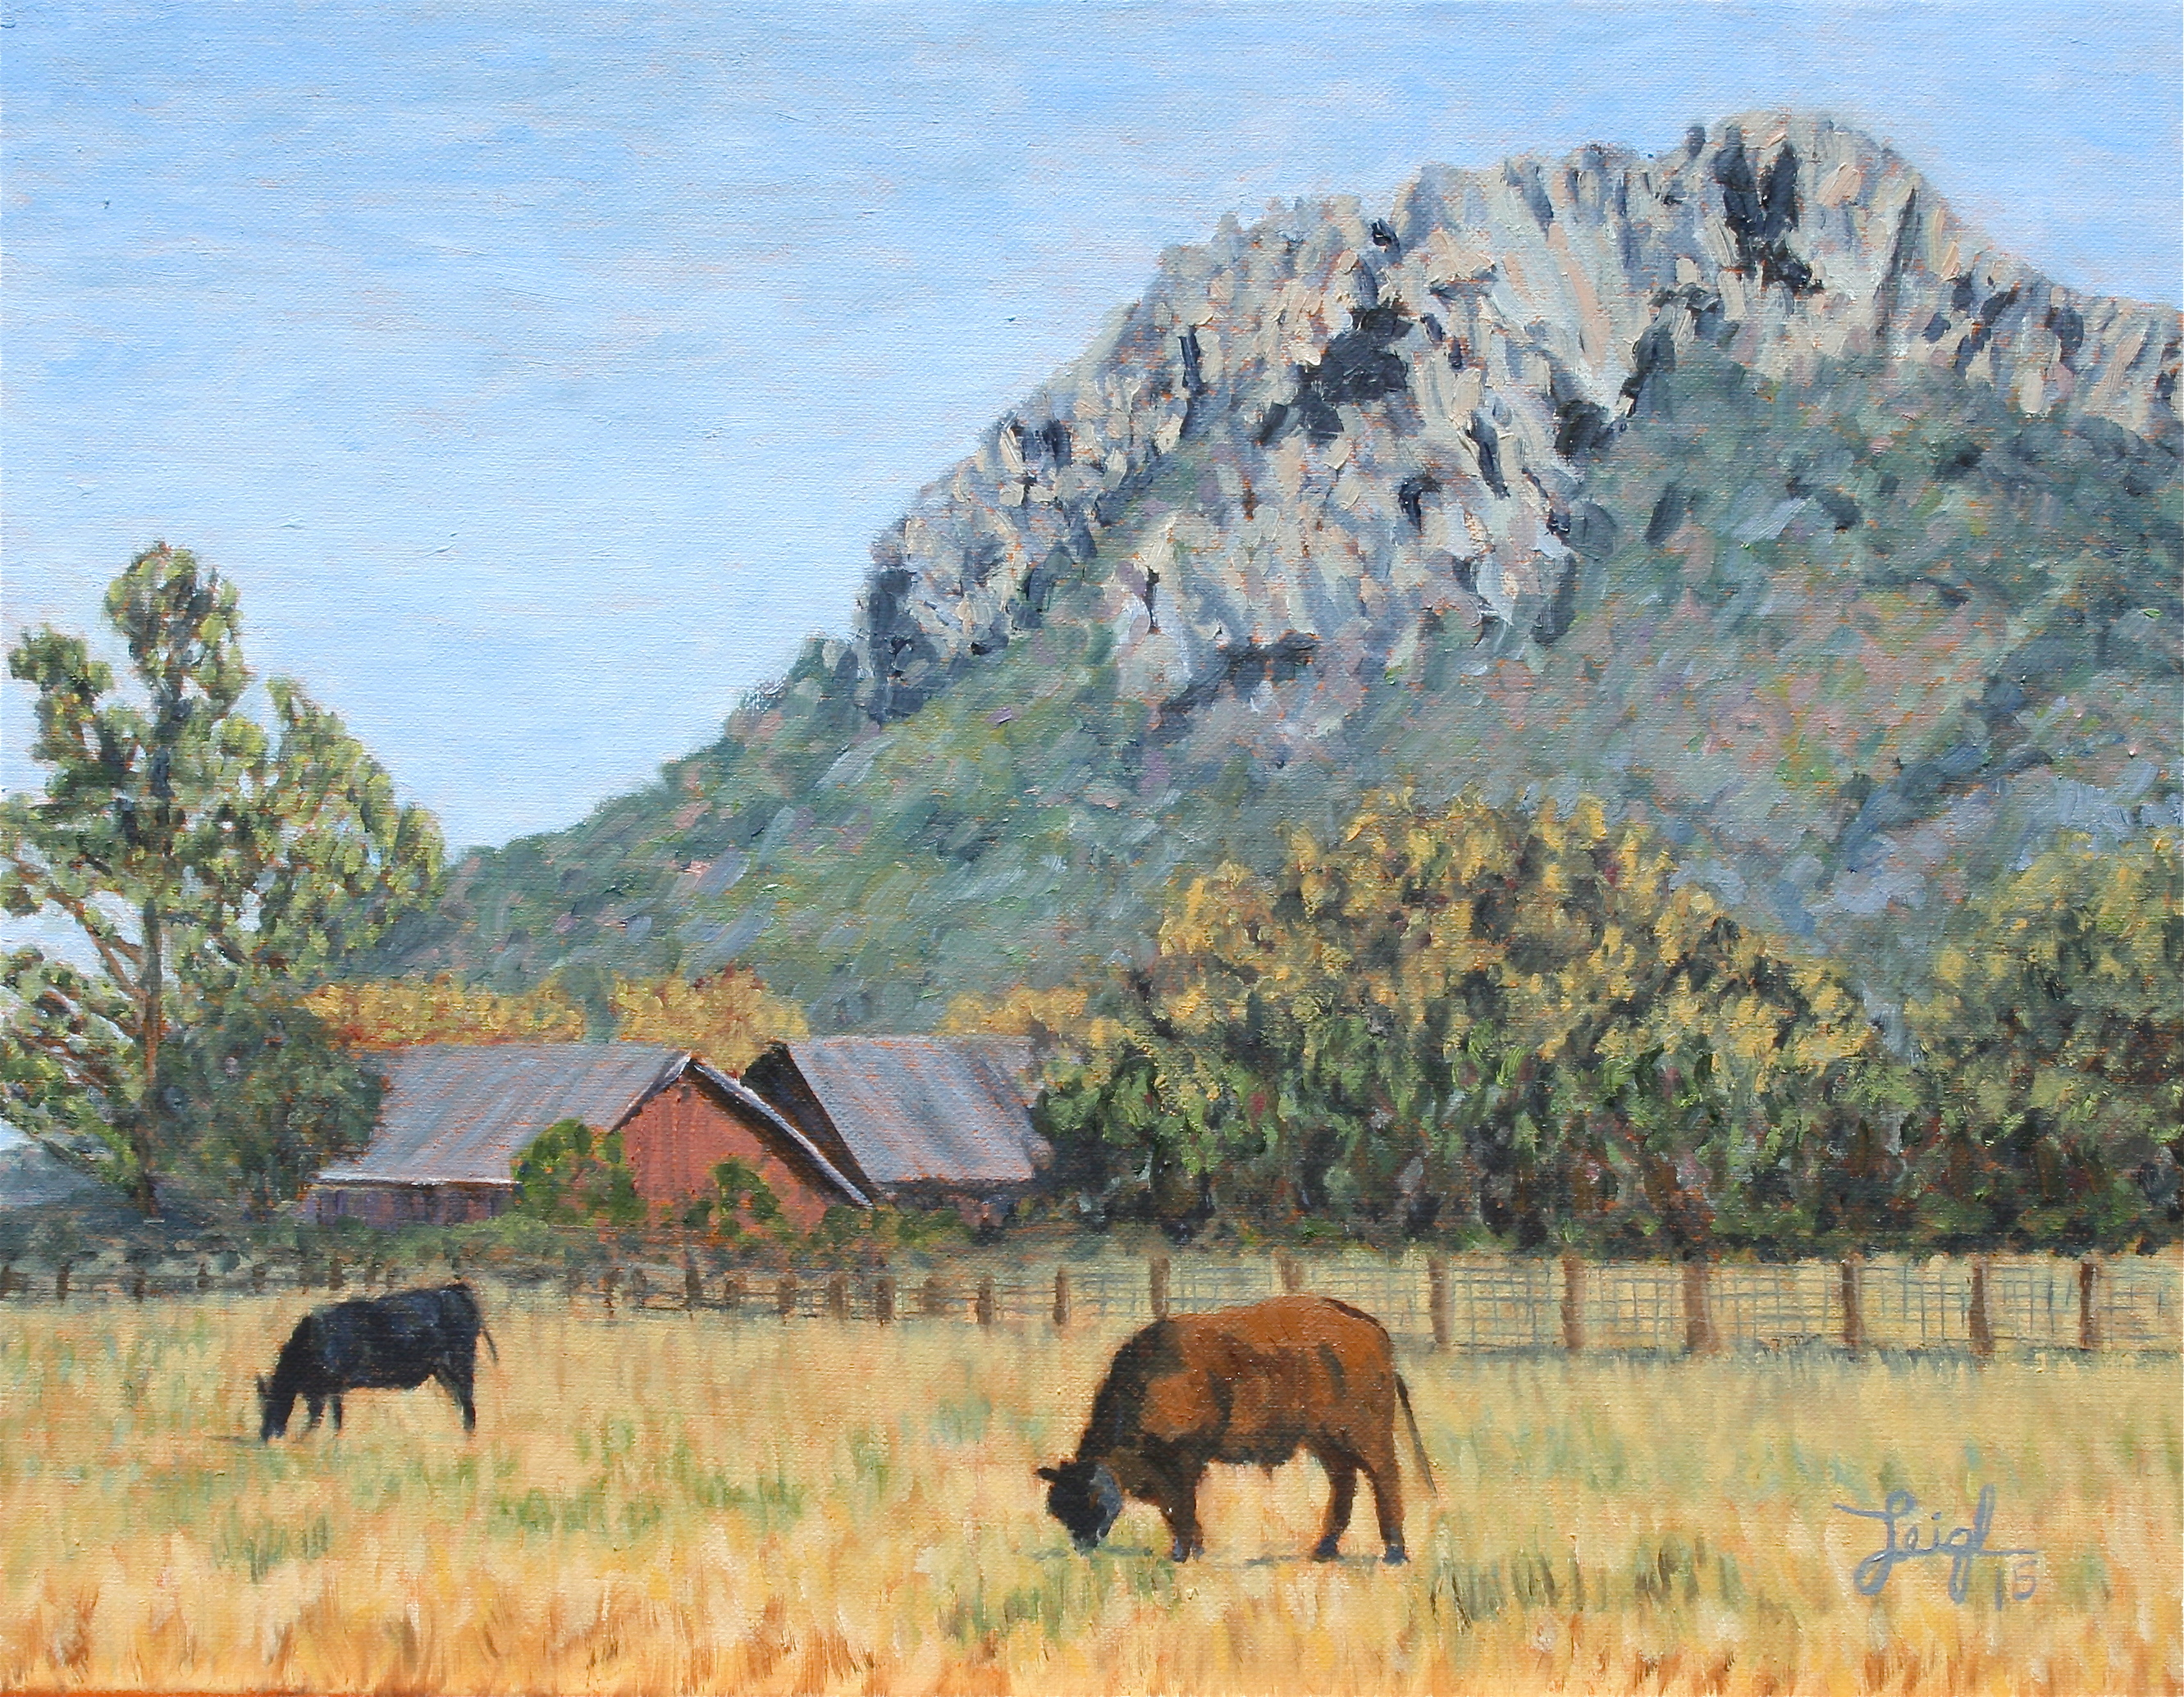 Cows near Hollister Peak  ~   Erica Pitkin, Fort Leavenworth, KS  2015 • 18 x 14